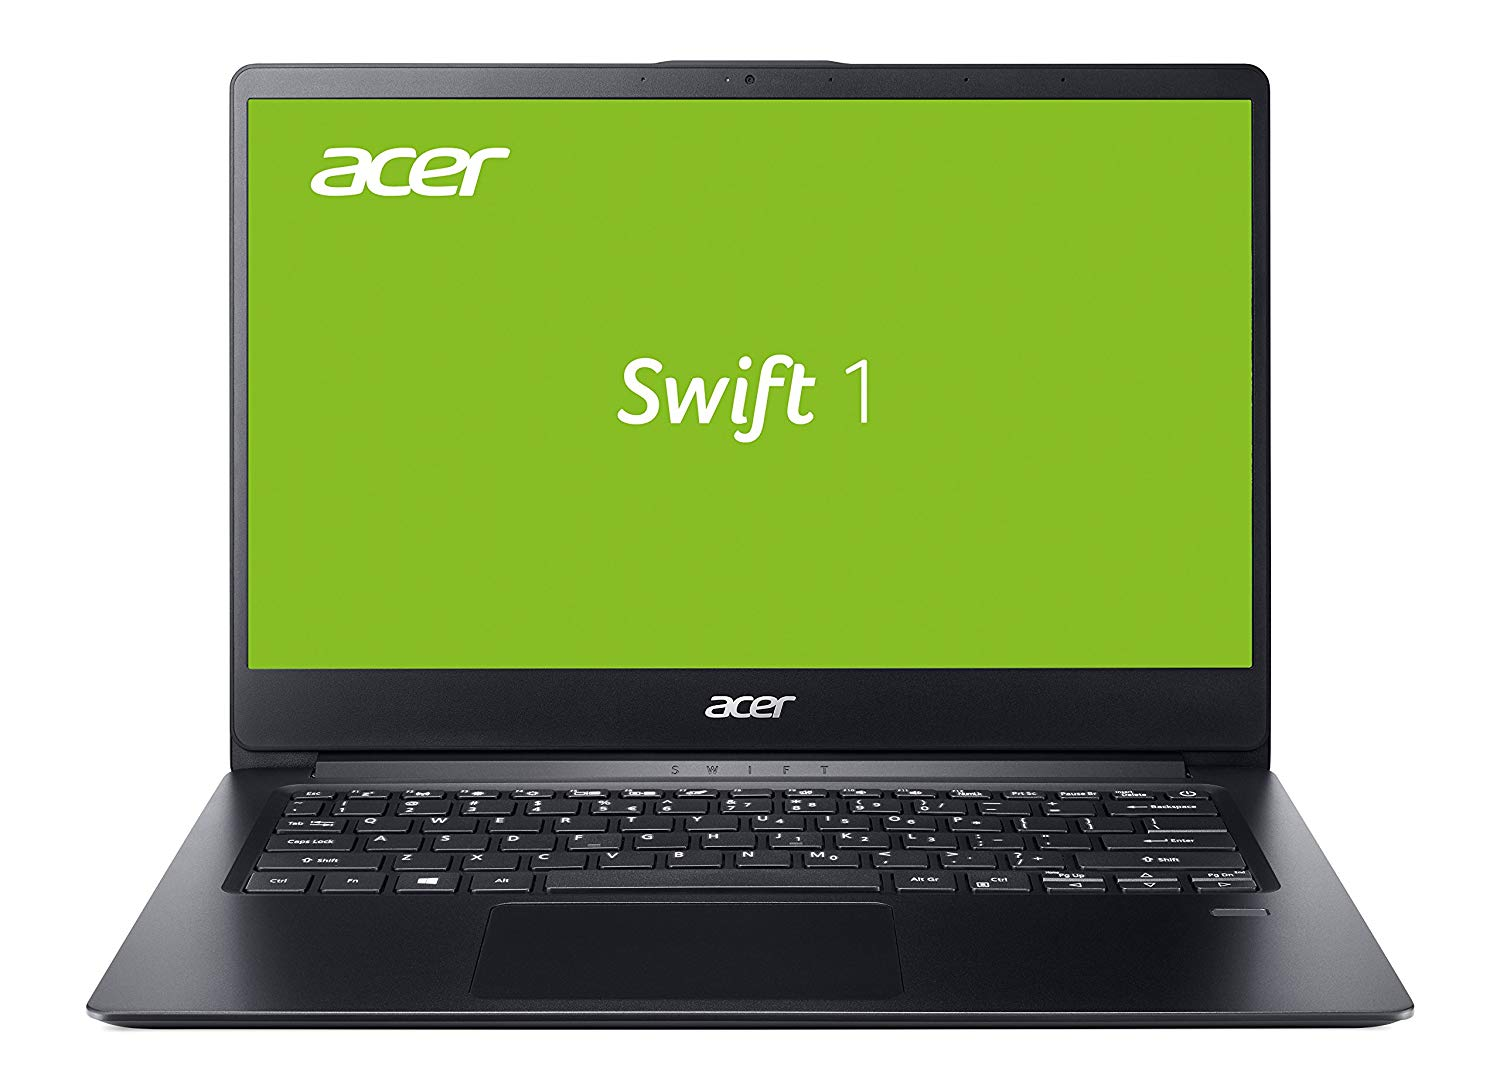 Acer Swift 1 (SF114-32-P0L3) 35,6 cm (14 Zoll Full-HD IPS matt) Ultrabook (Intel Pentium N5000, 8 GB RAM, 256 GB SSD, Intel UHD, Win 10) schwarz